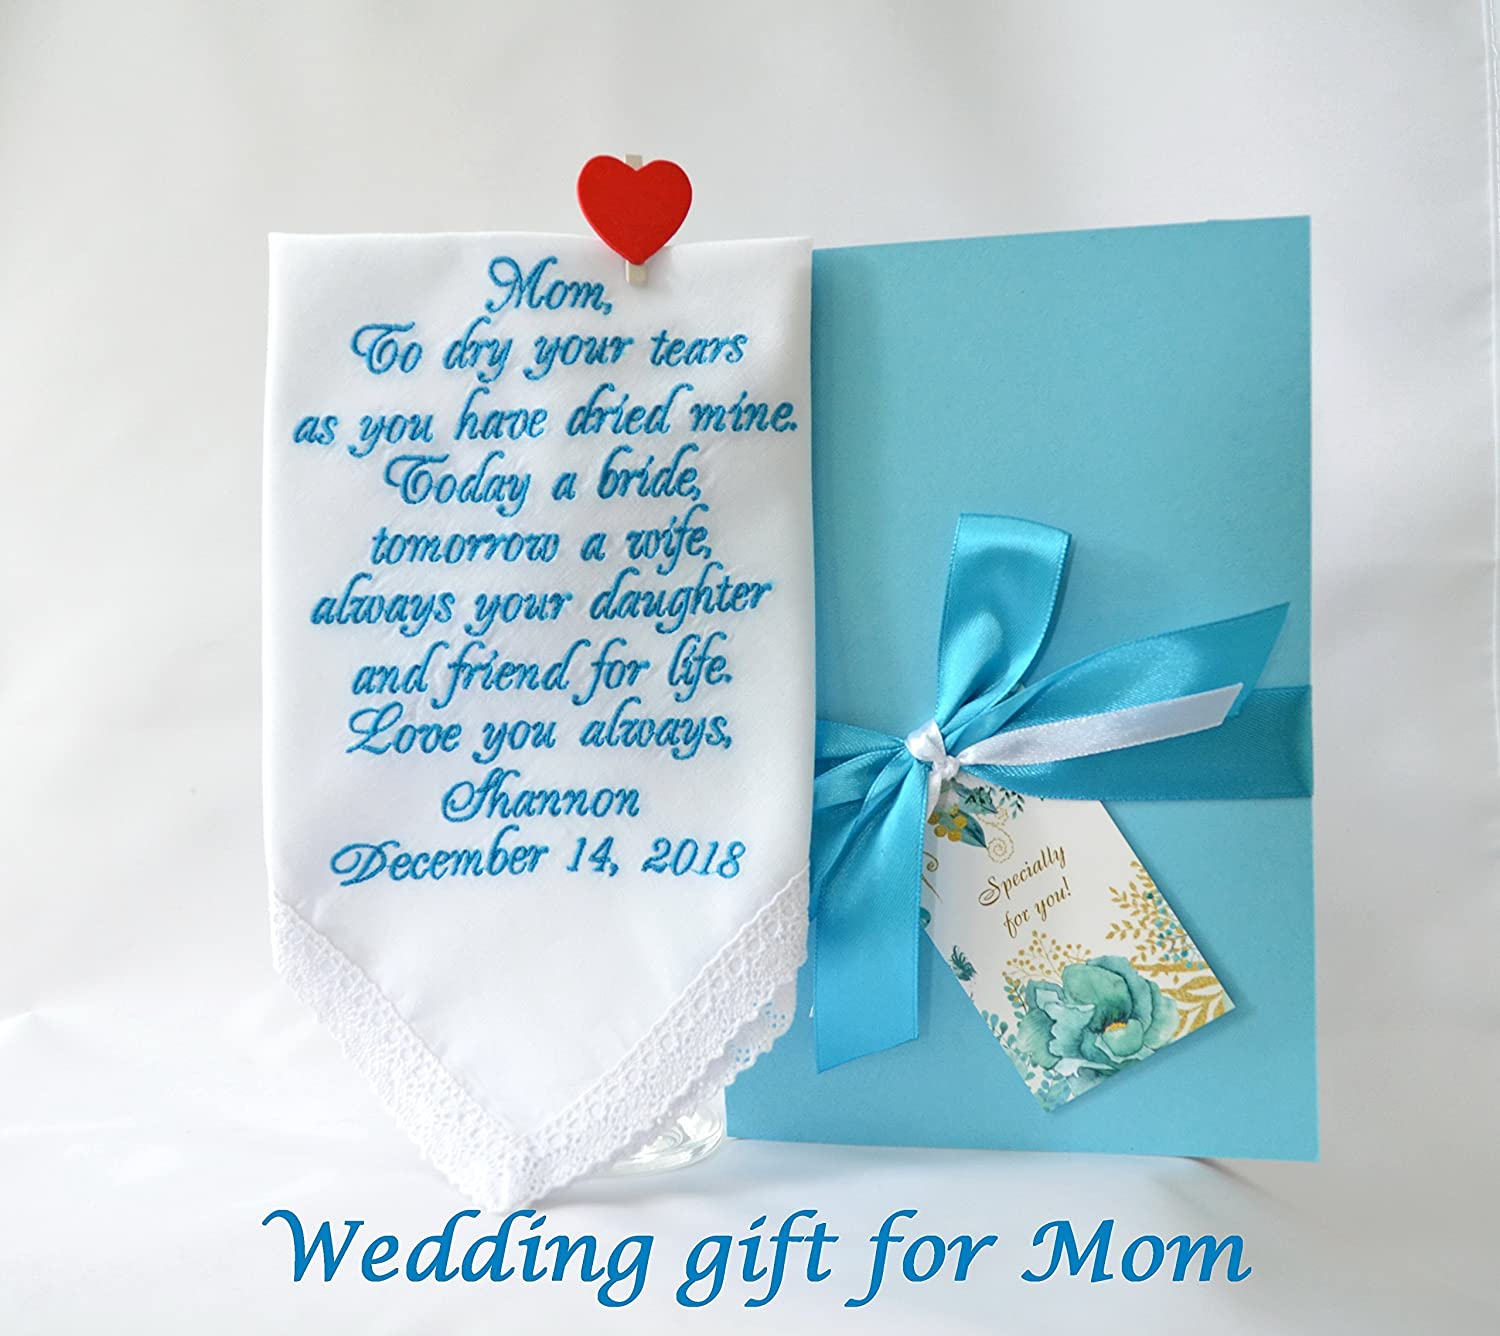 Wedding gift for Mom from daughter Mother of the Bride handkerchief Wedding keepsake Personalized hankies Embroidered hankie Wedding favours Custom hankies Mother daughter gift